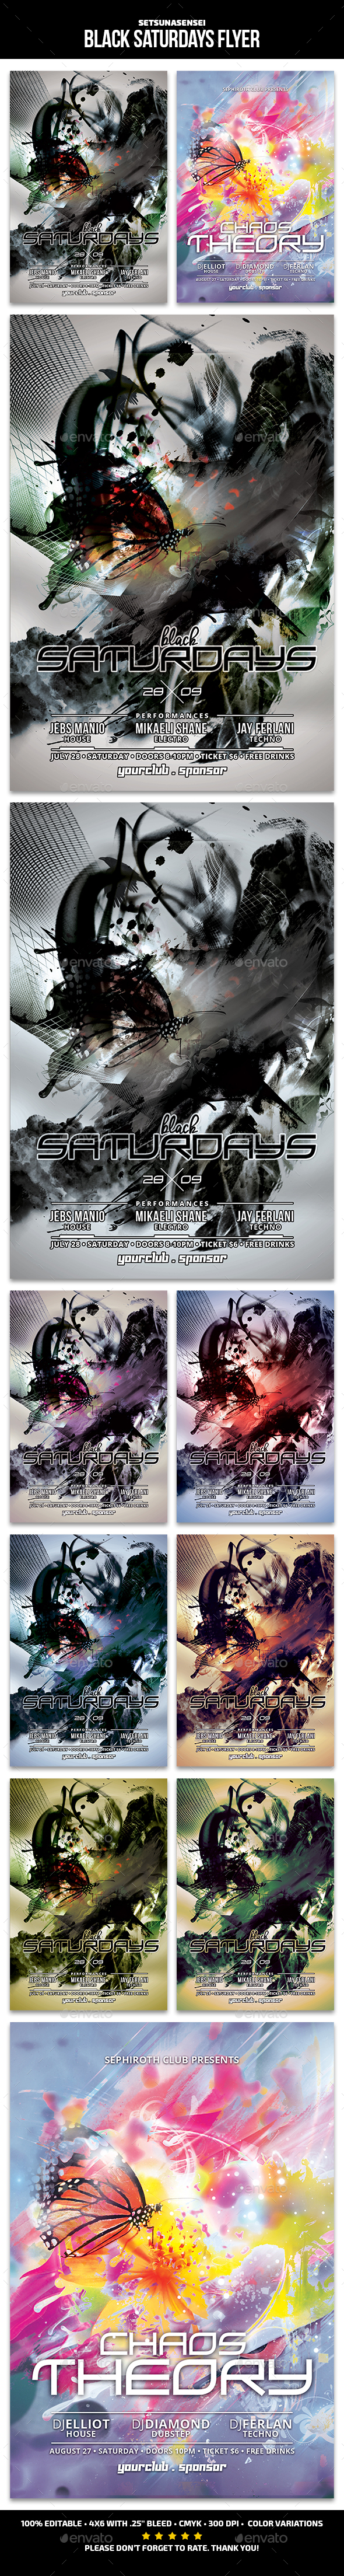 Black Saturdays Flyer - Clubs & Parties Events